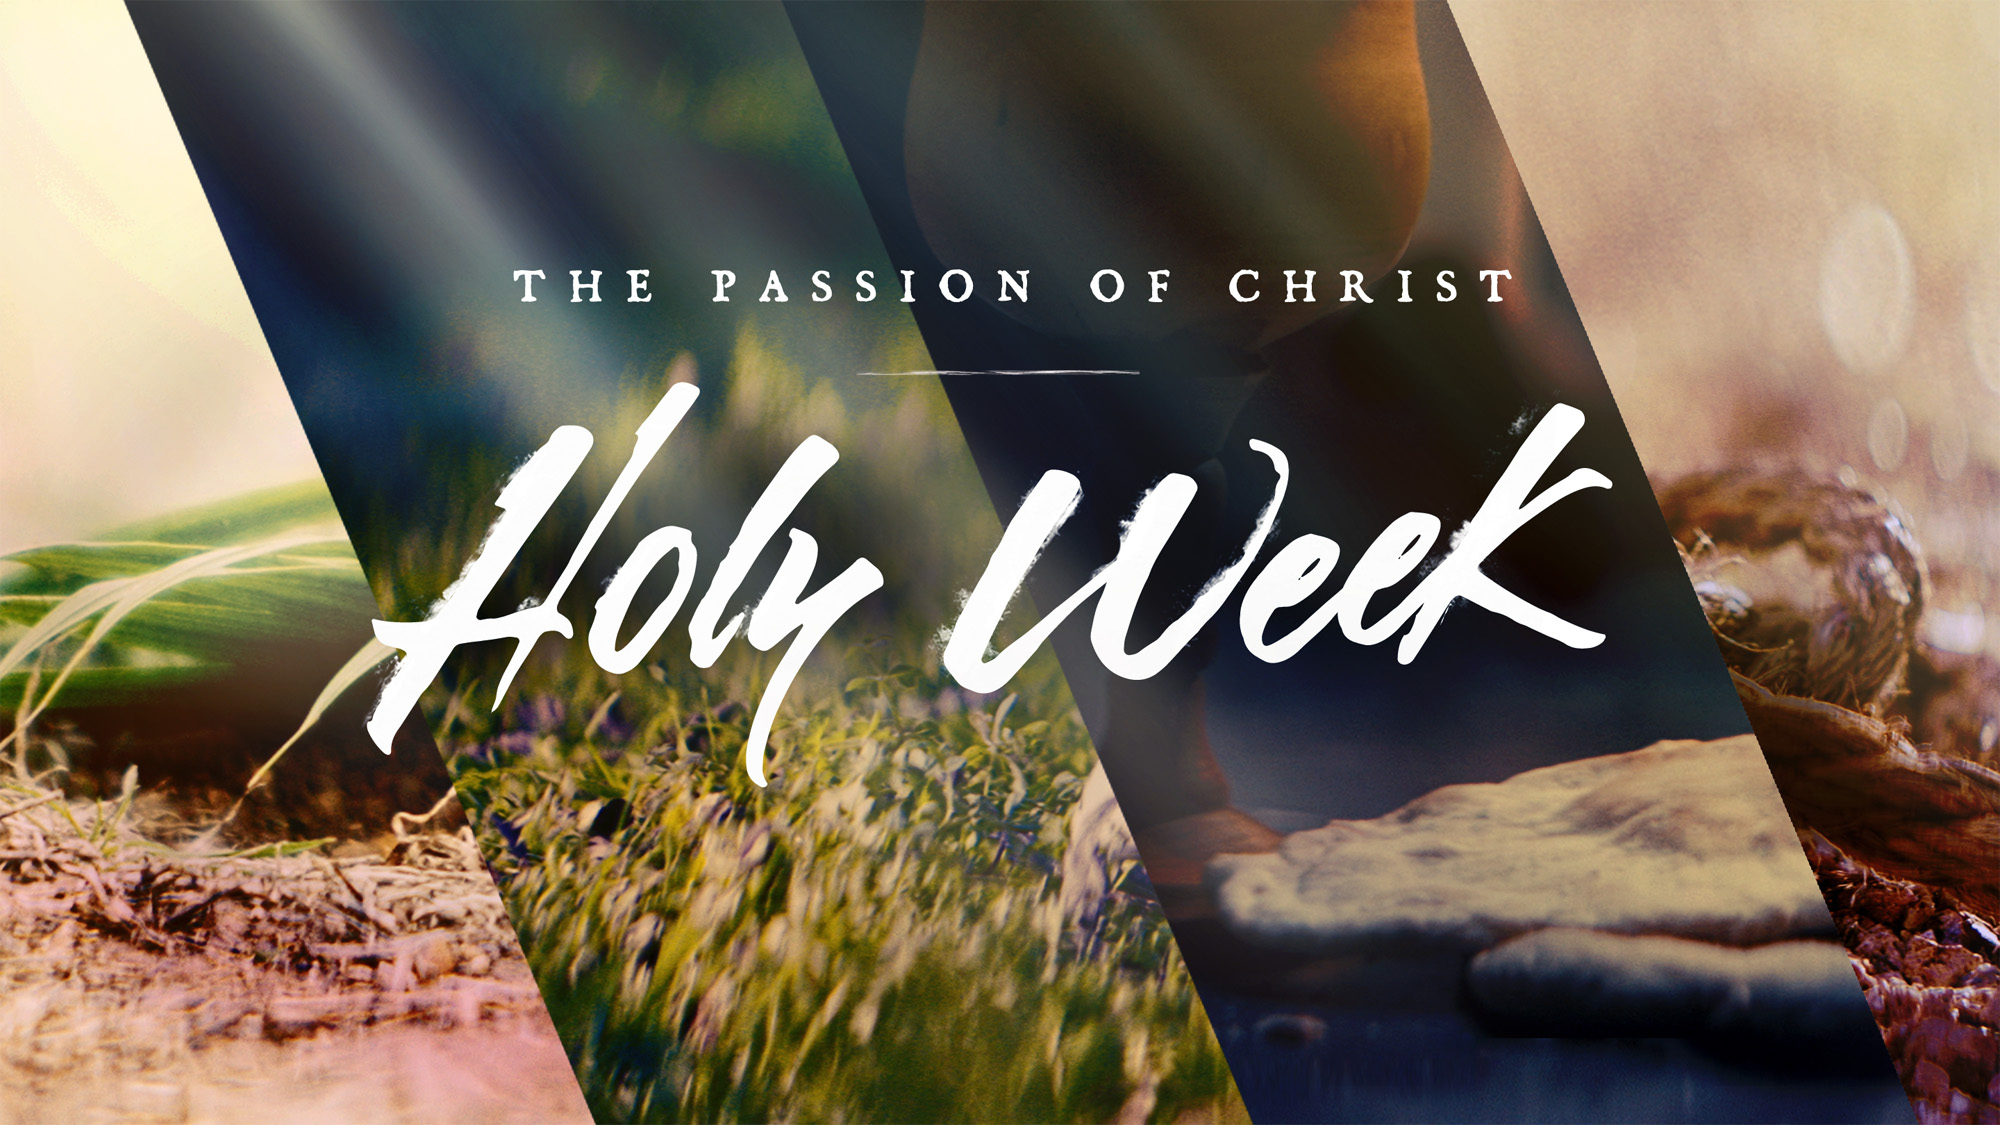 easter_moments_holy_week-title-1-Wide 16x9.jpg